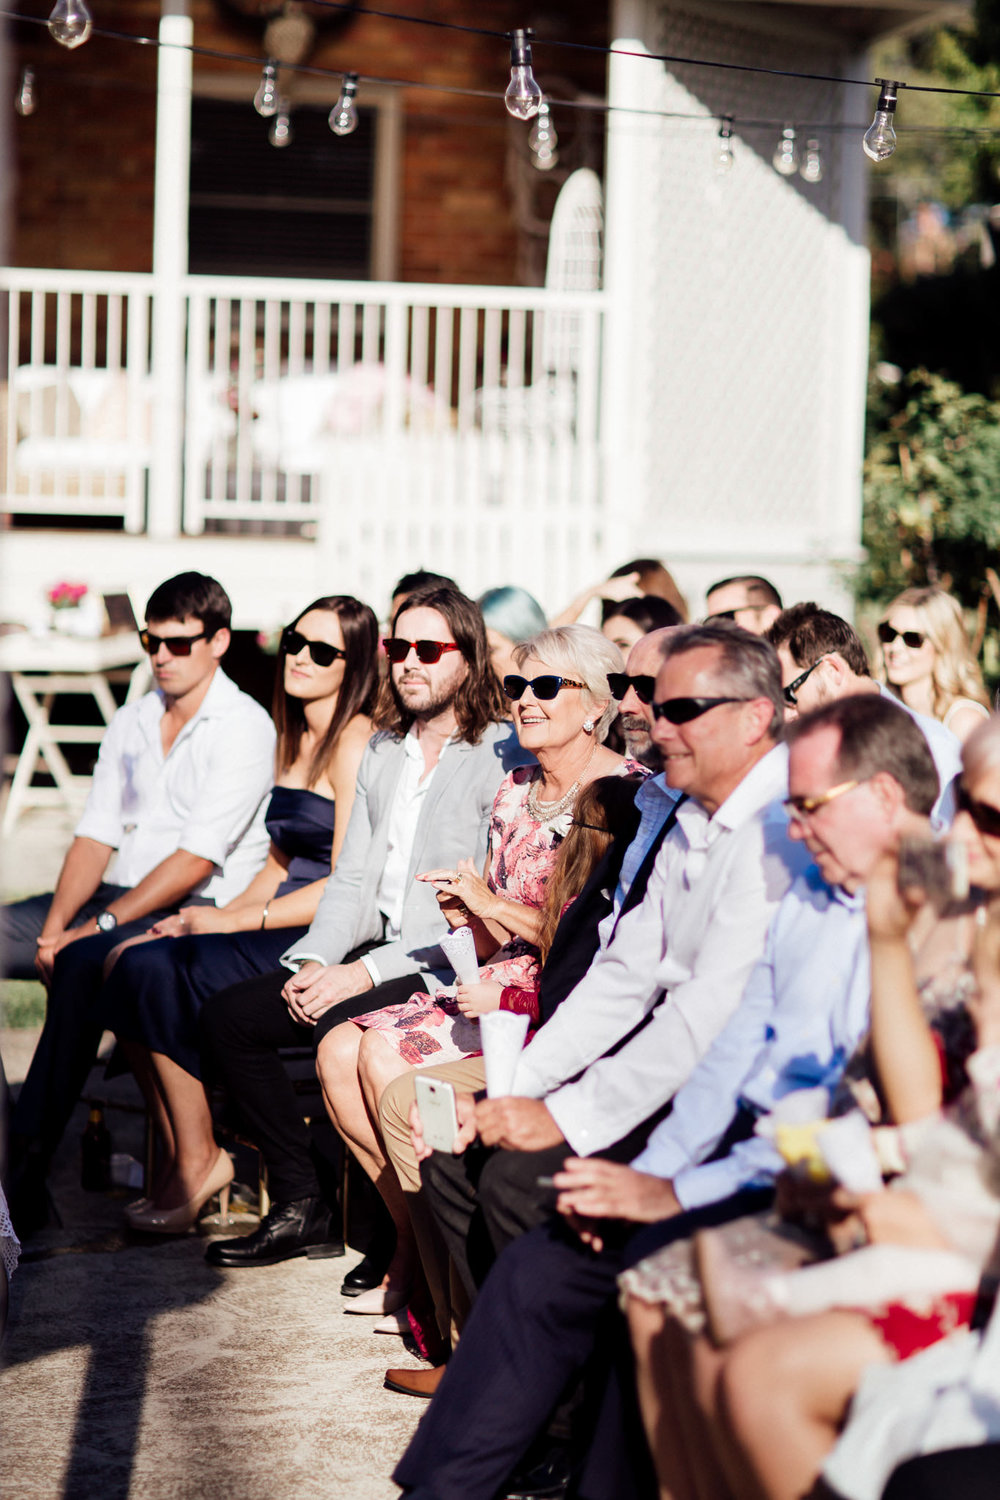 Backyardwedding_Newcastle_WeddingPhotography-1012.jpg